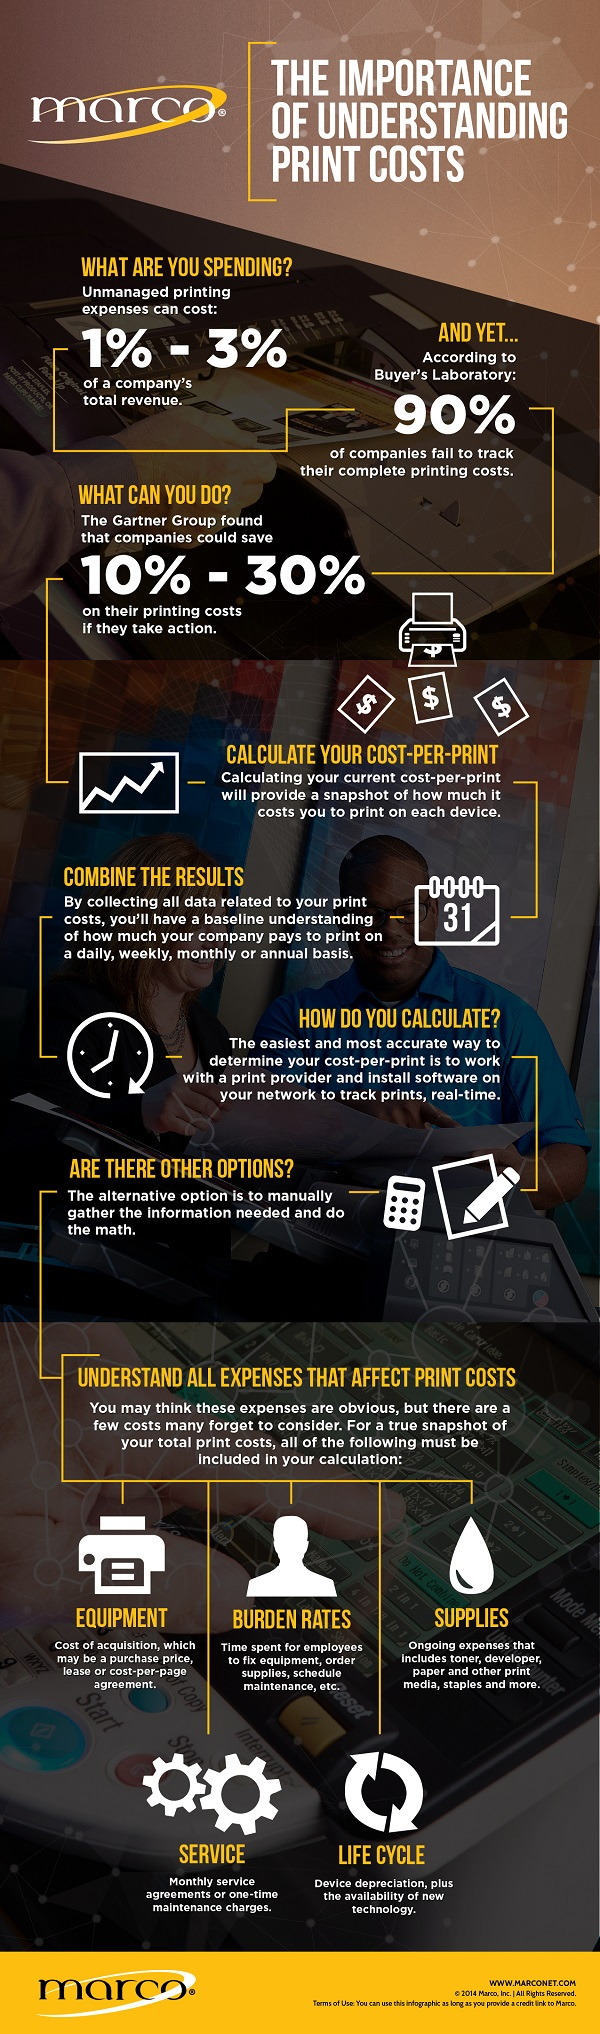 Print Costs Infographic